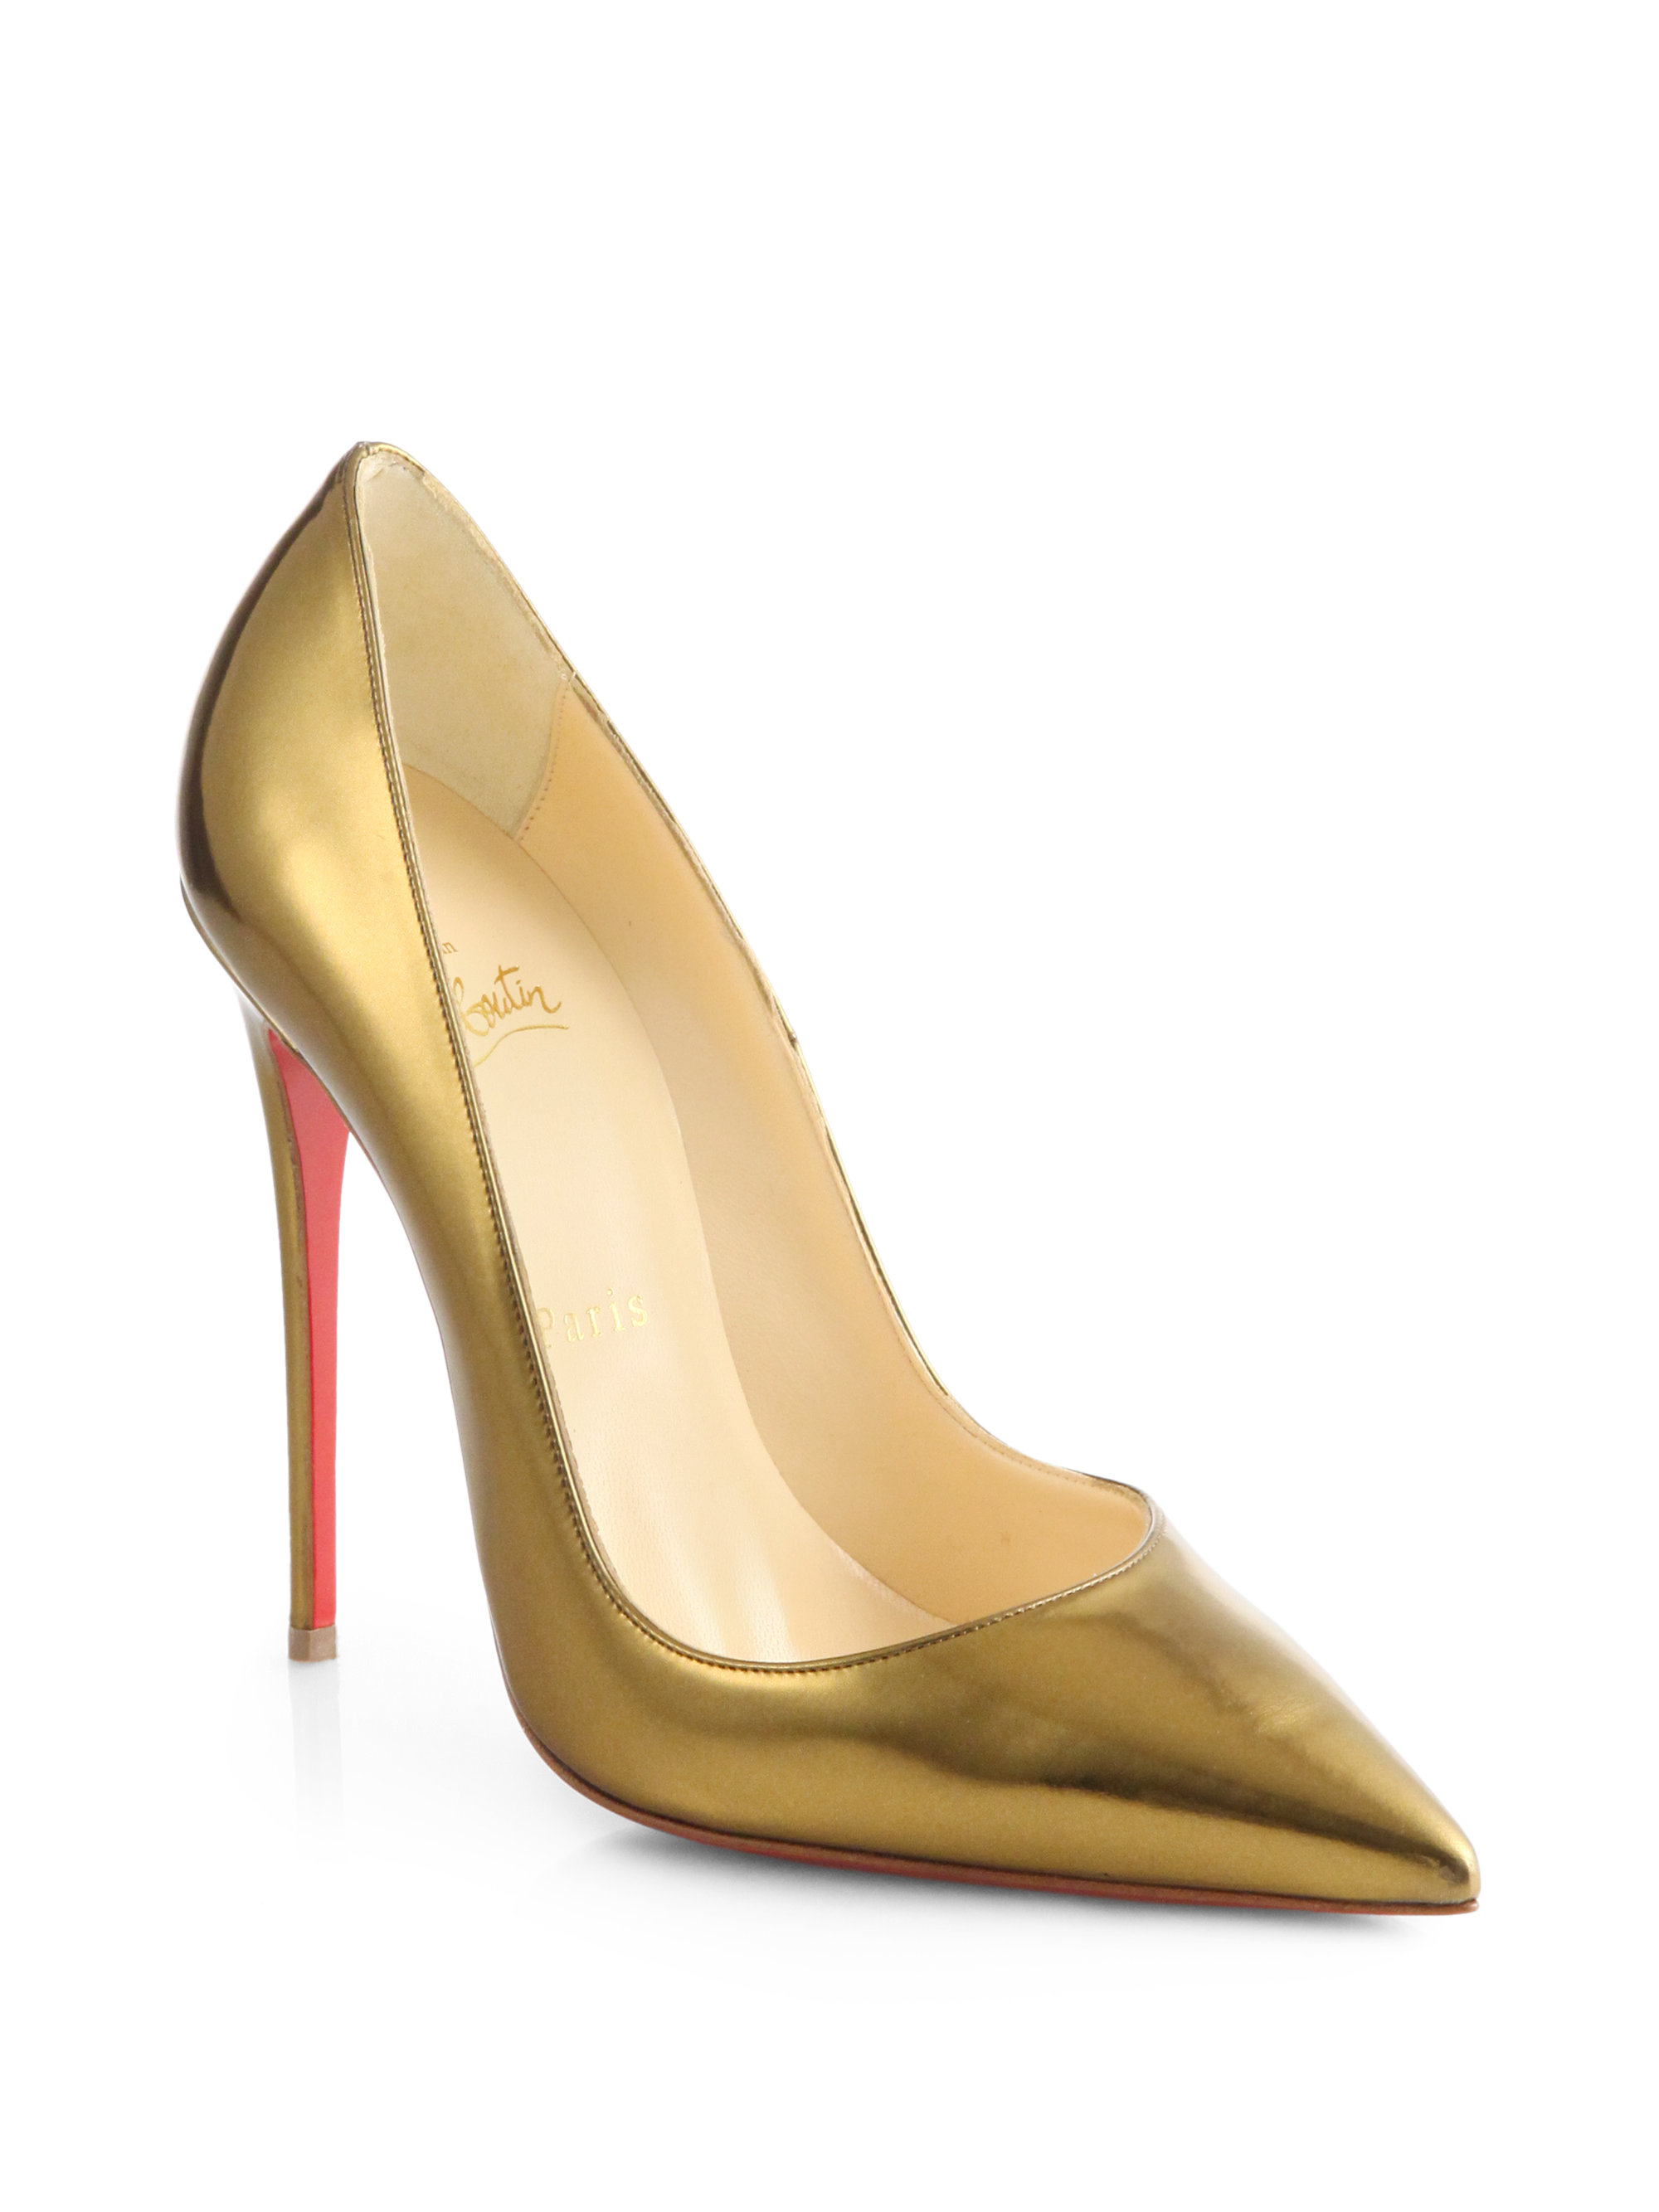 online store 922aa dfc6a Christian Louboutin Metallic So Kate Specchio Leather Pumps